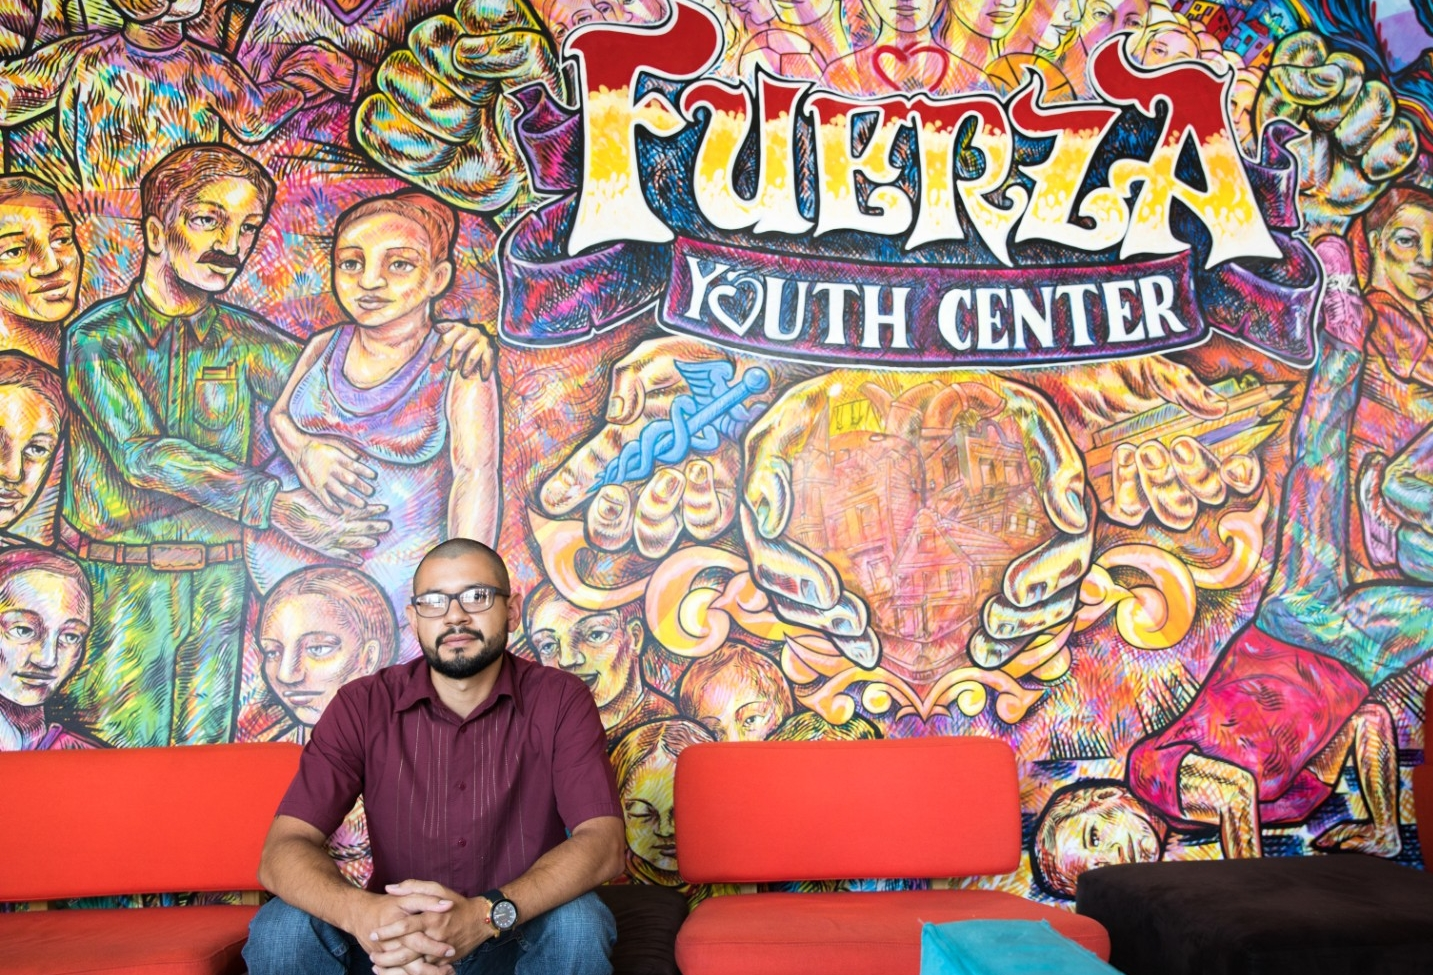 Fuerza is a youth center that creates a safe haven for kids.